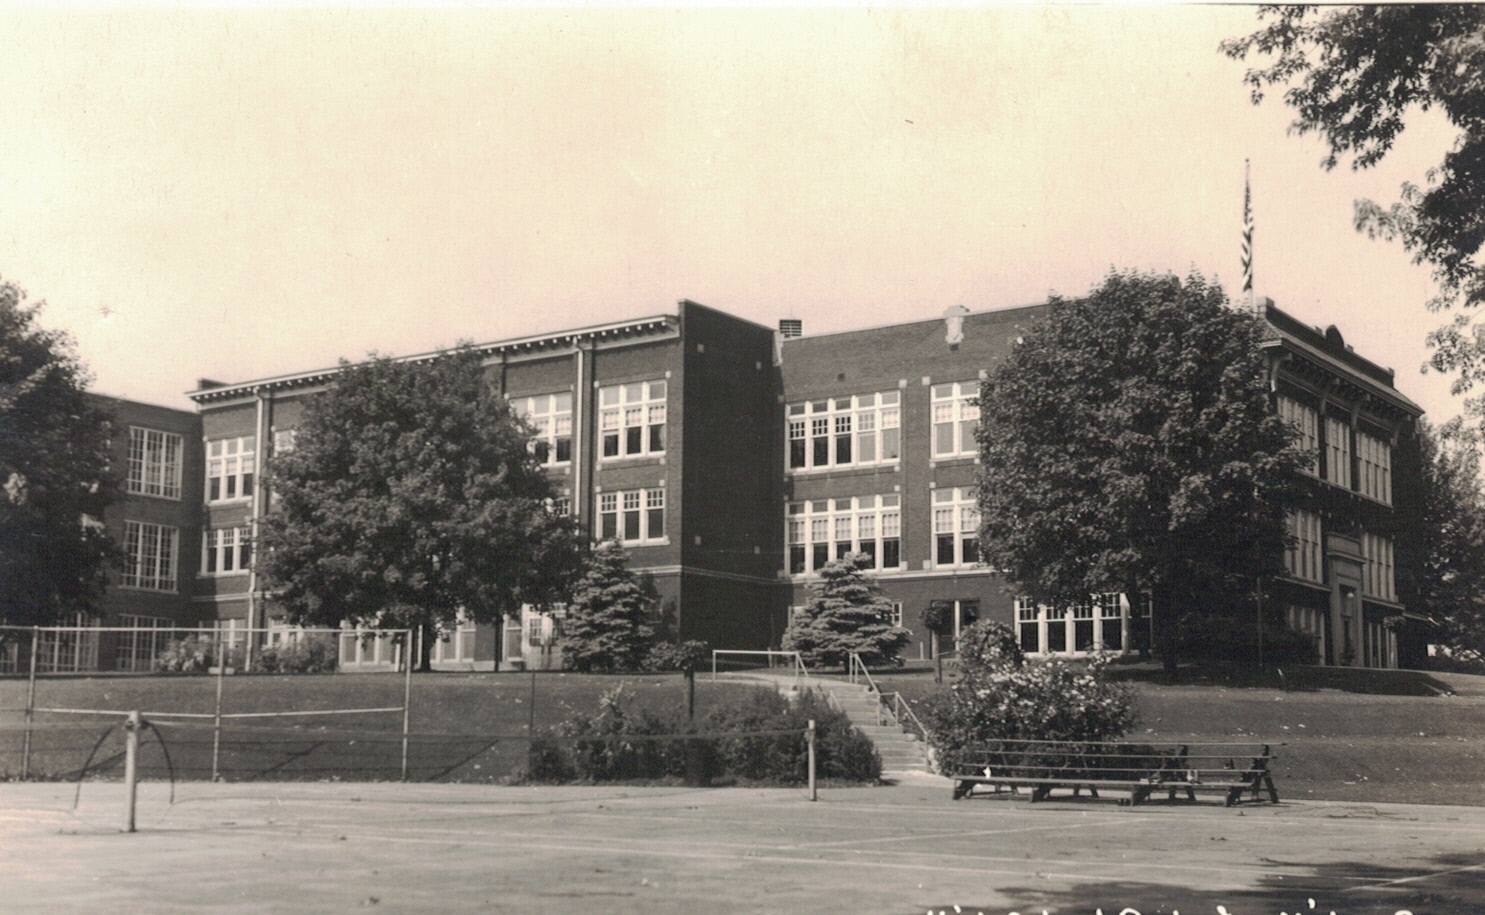 Rochester High School 1916/1920 building, east and north elevations, 1945